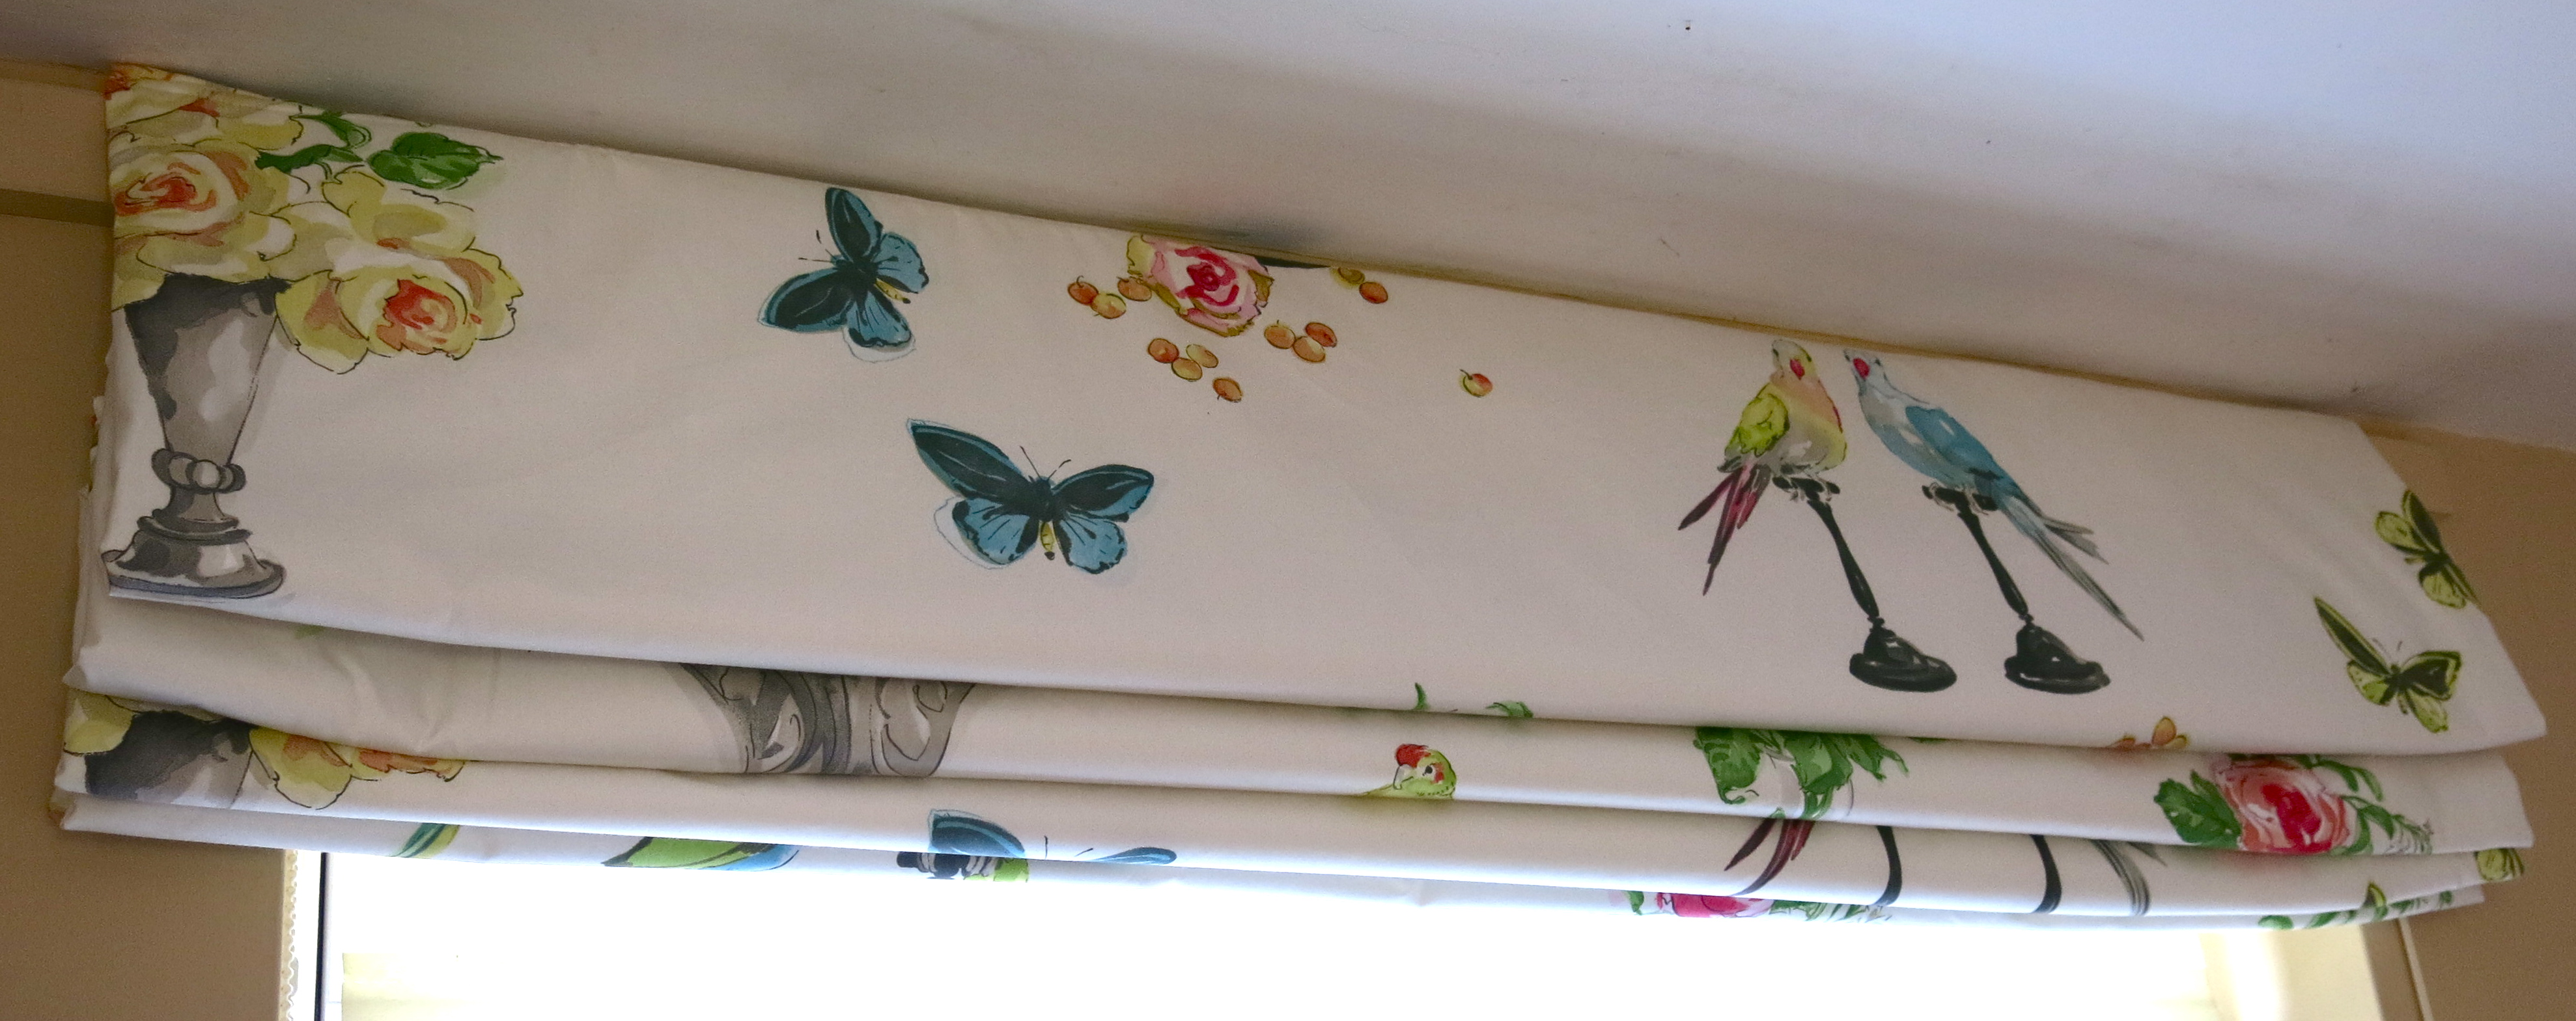 As Promised Recently Having Shown You My New Sewing Room Roman Blinds Here Is A Tutorial On How To Make One For Yourself I Ve Had Some Emails And Tweets